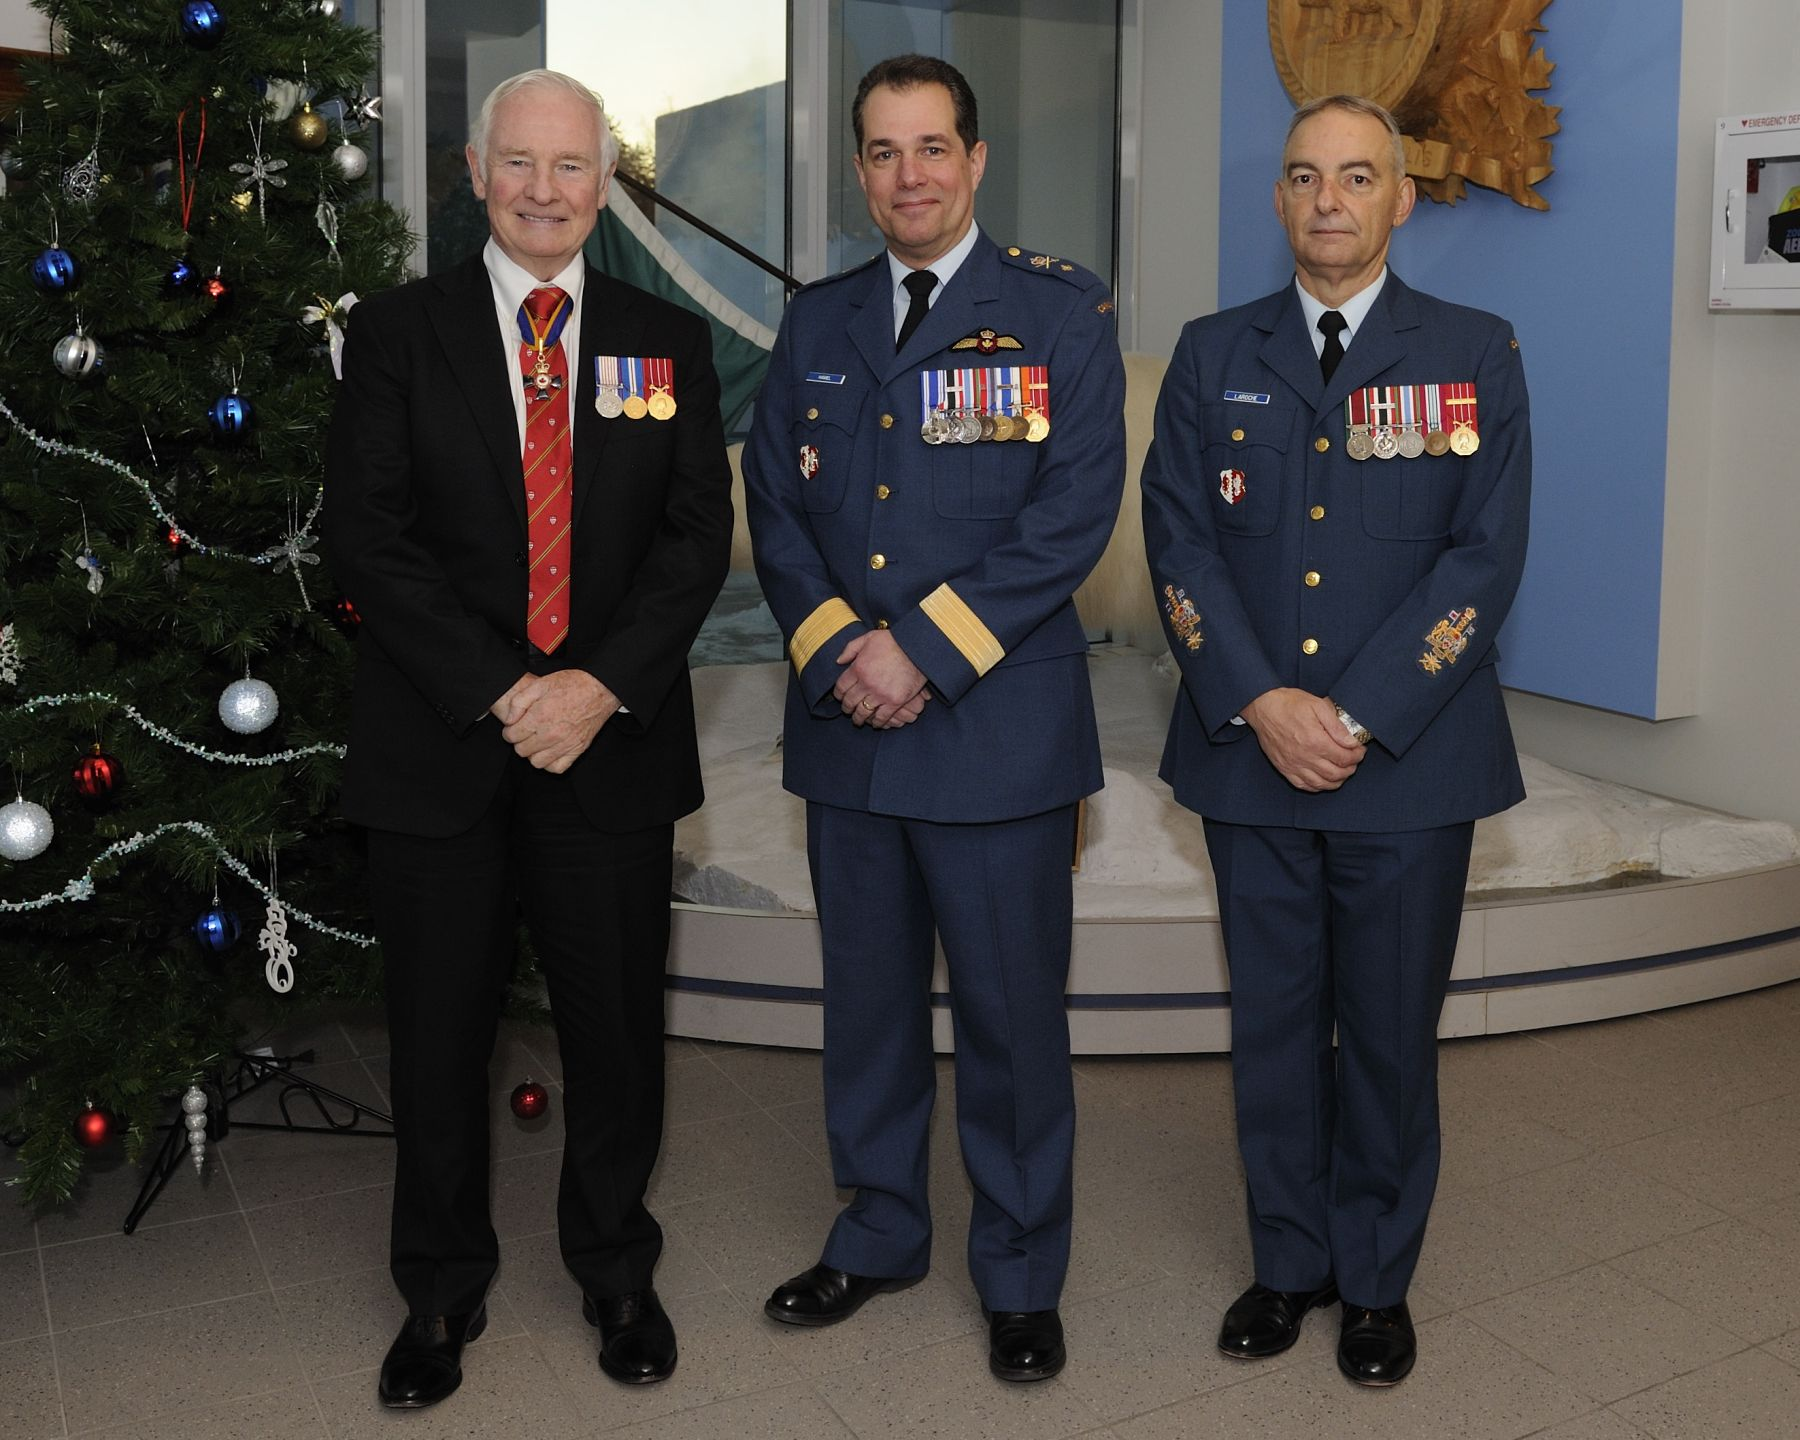 The Governor General was welcomed by Brigadier-General Guy Hamel, Commander of the Joint Task Force (North) (left), and Chief Warrant Officer Gilles Laroche (right).